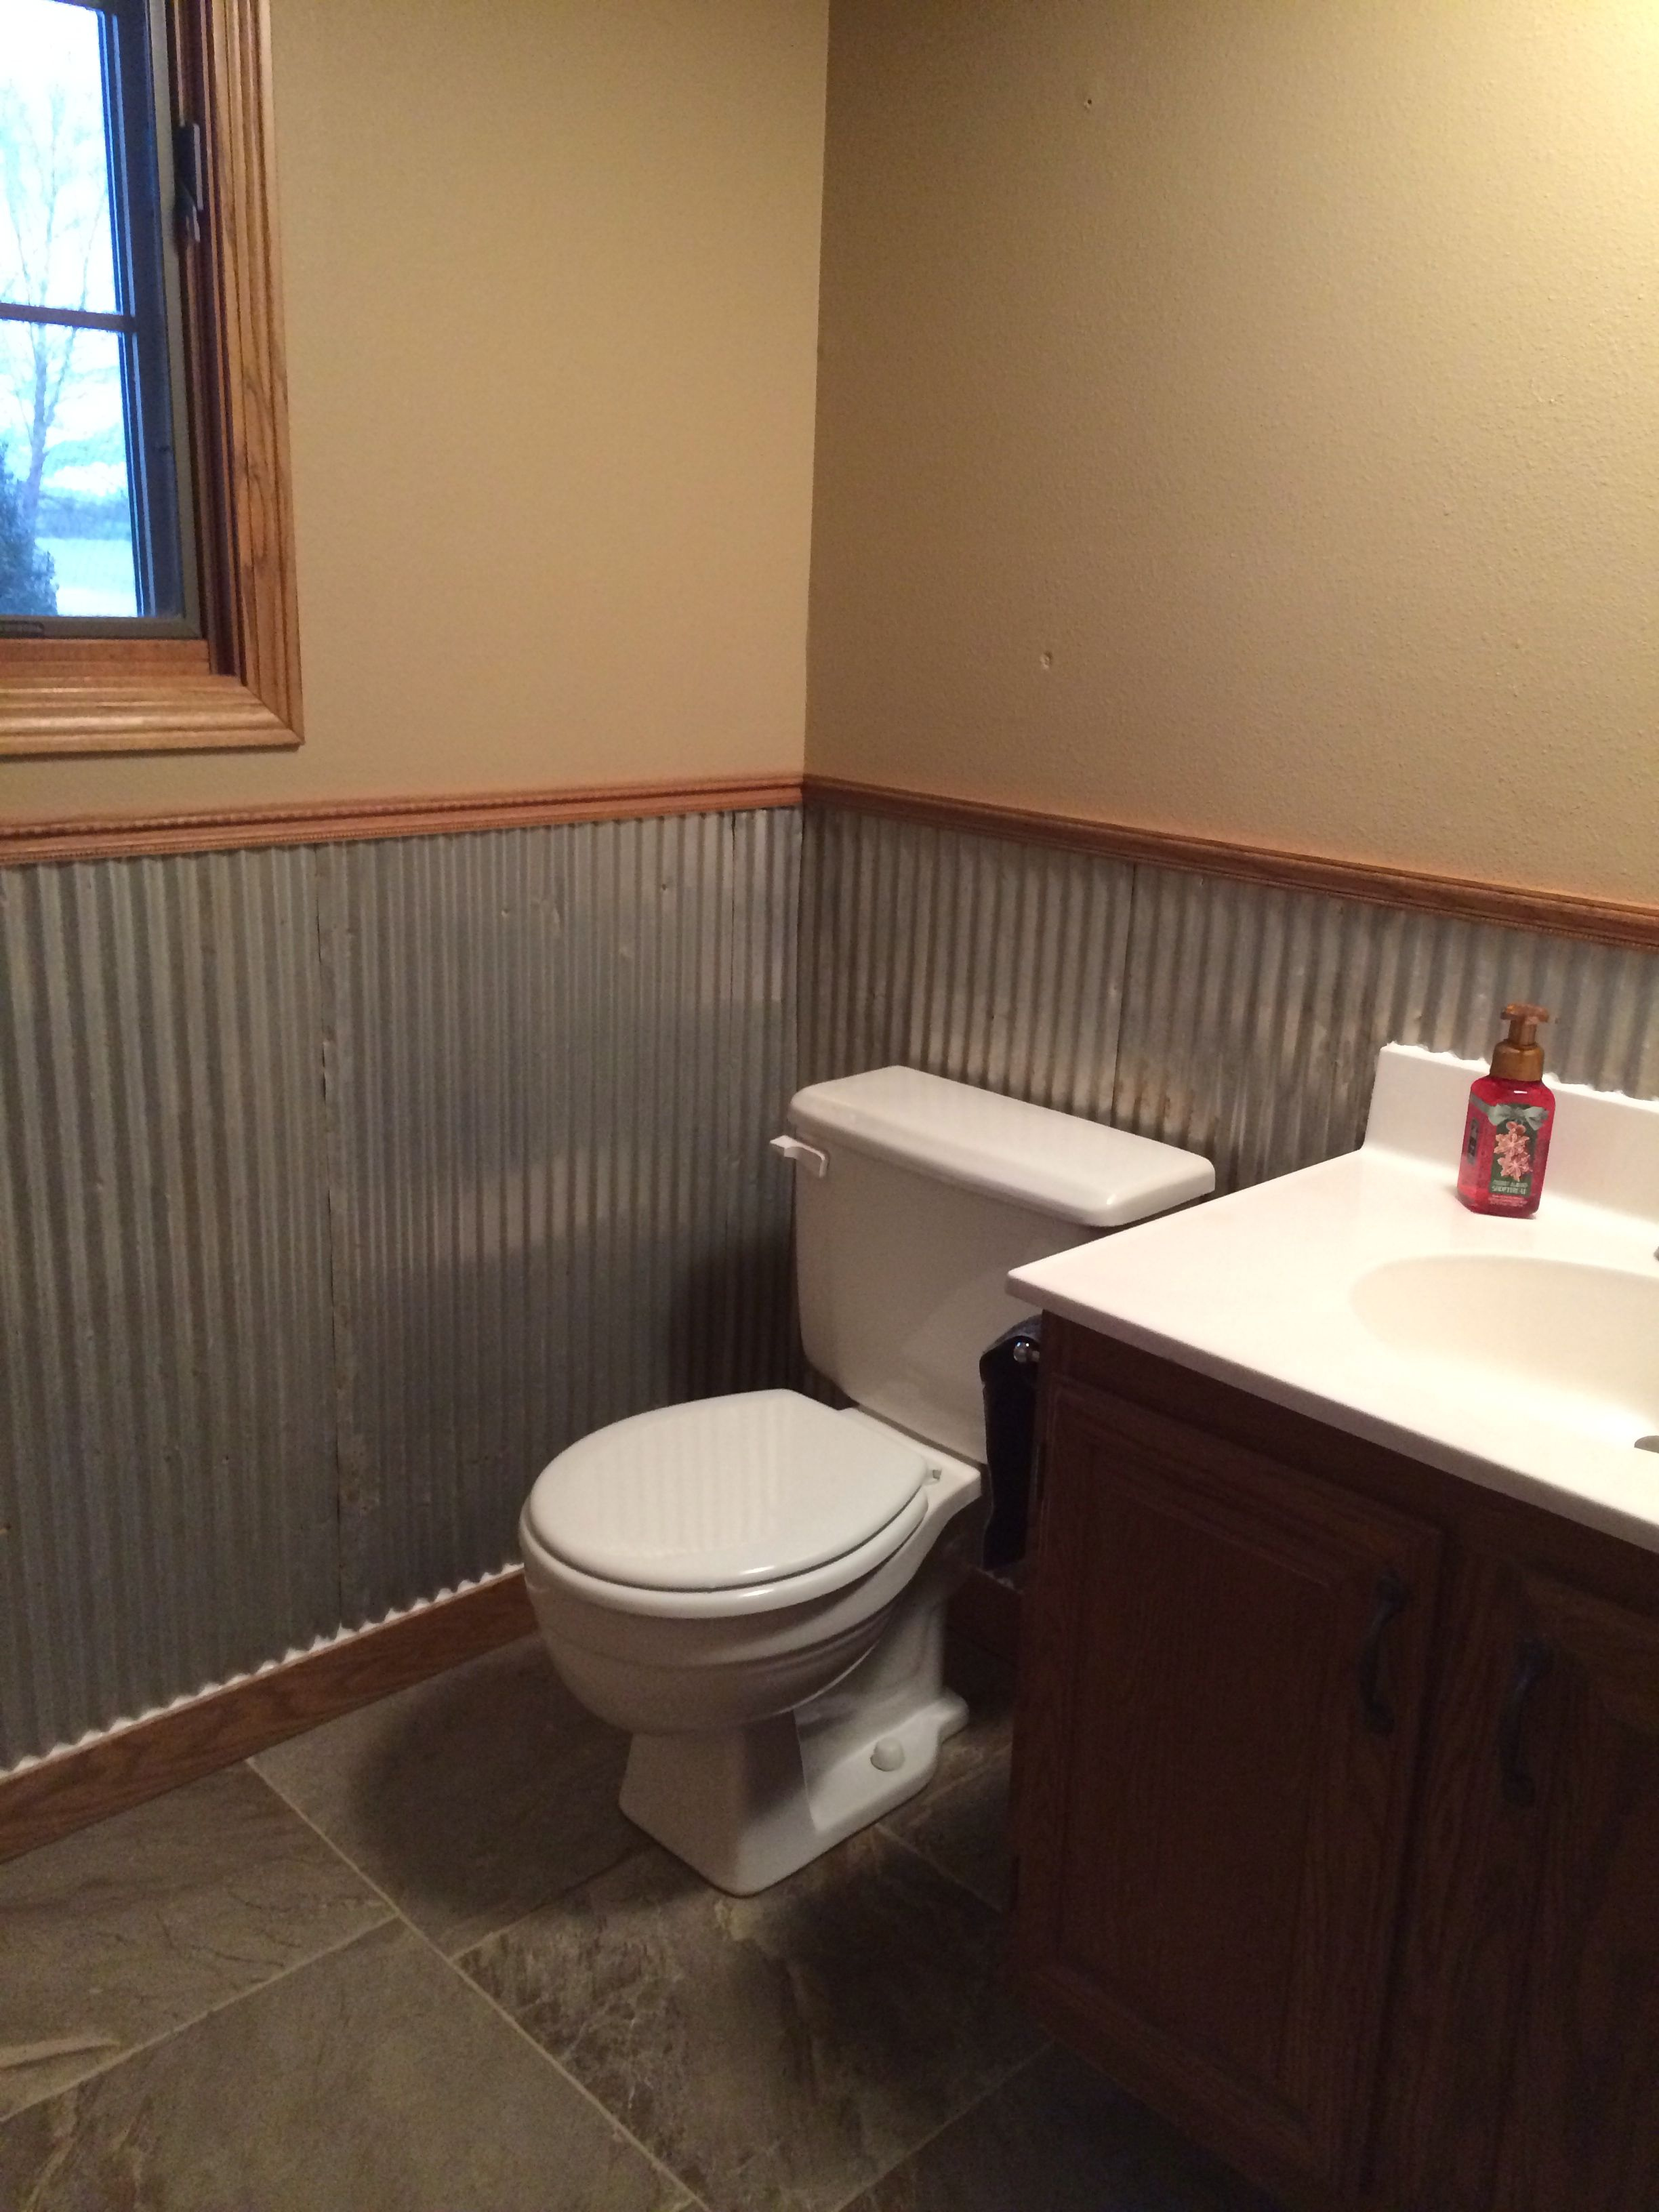 Old Galvanized Tin Used As Wainscoting In Half Bath Basement Bathroom Basement Bathroom Design Small Bathroom